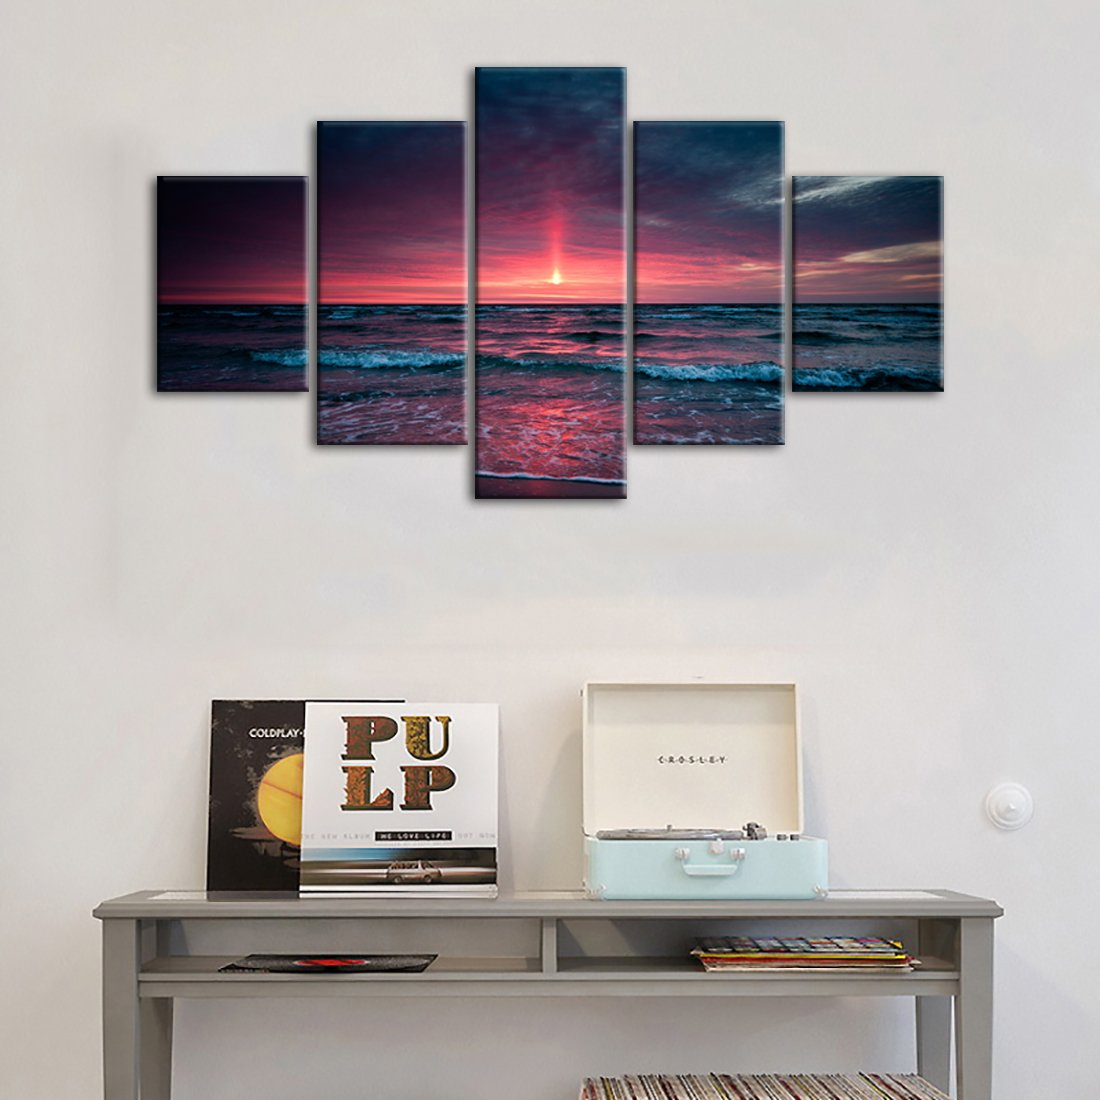 5 Panel Canvas Wall Art For Living Room Red Aurora Appears In The Ocean  Seaview Sunset Painting Modern Seascape Pictures Home Wall Decor Prints And in Aurora Sun Wall Decor (Image 2 of 30)